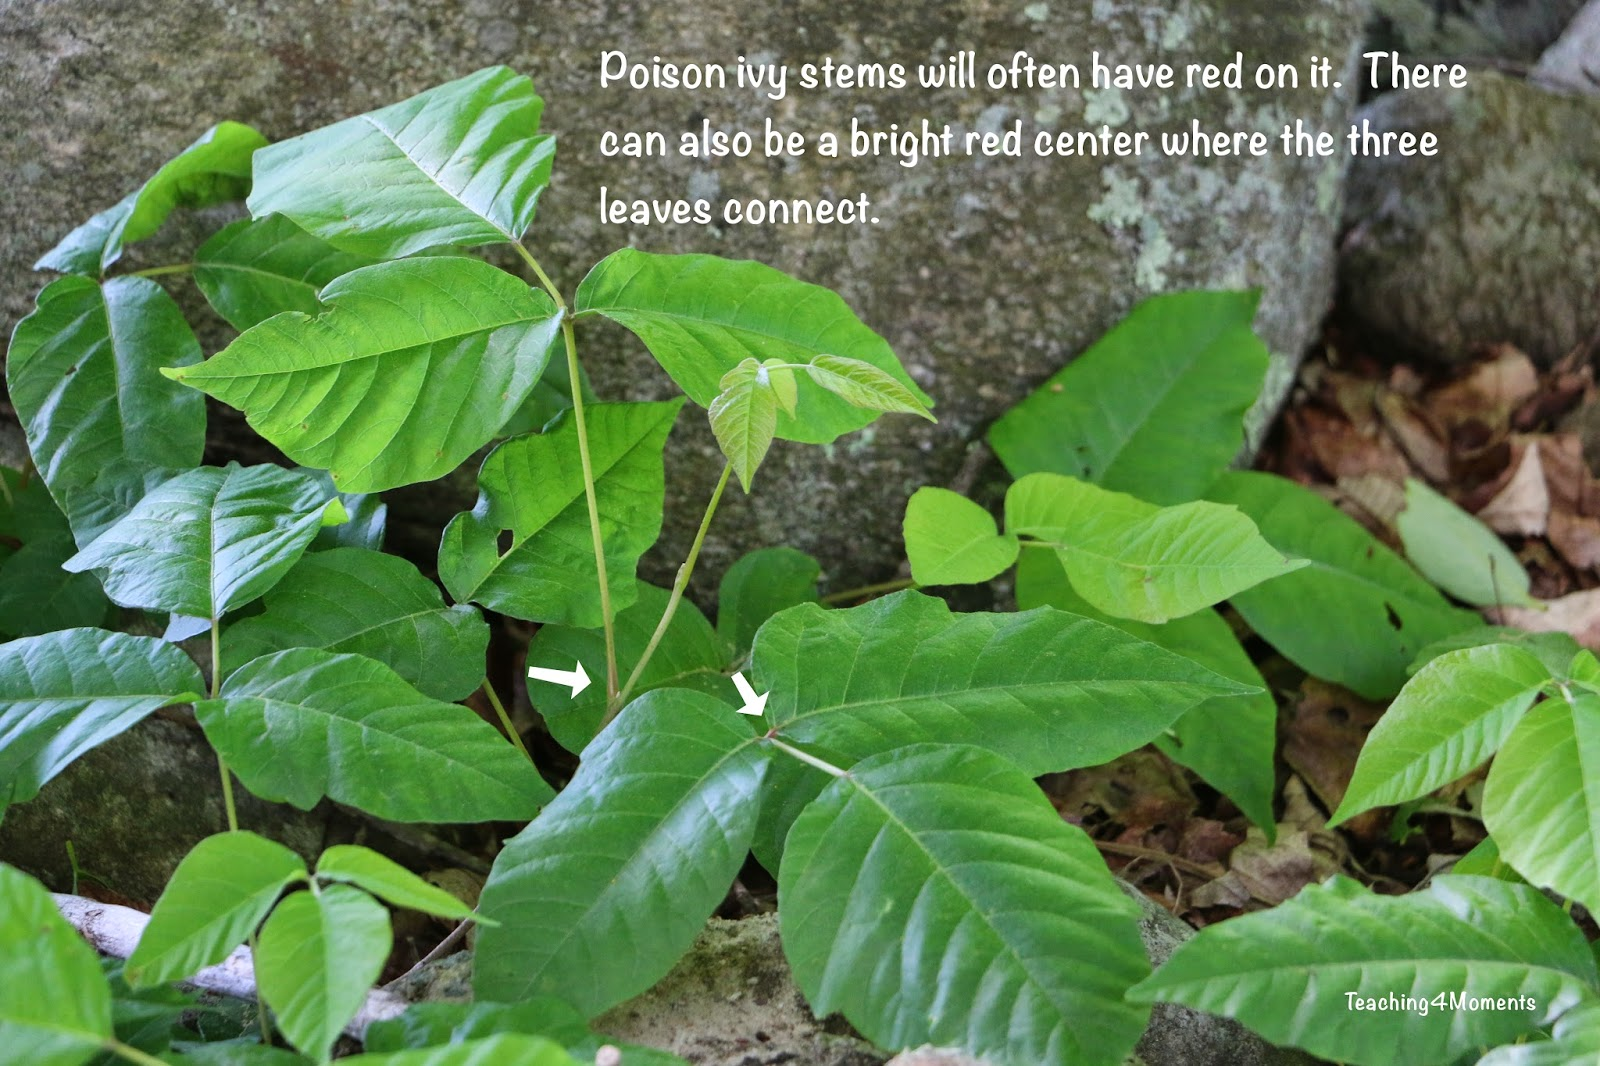 Teaching 4 Moments-red center stem in poison ivy